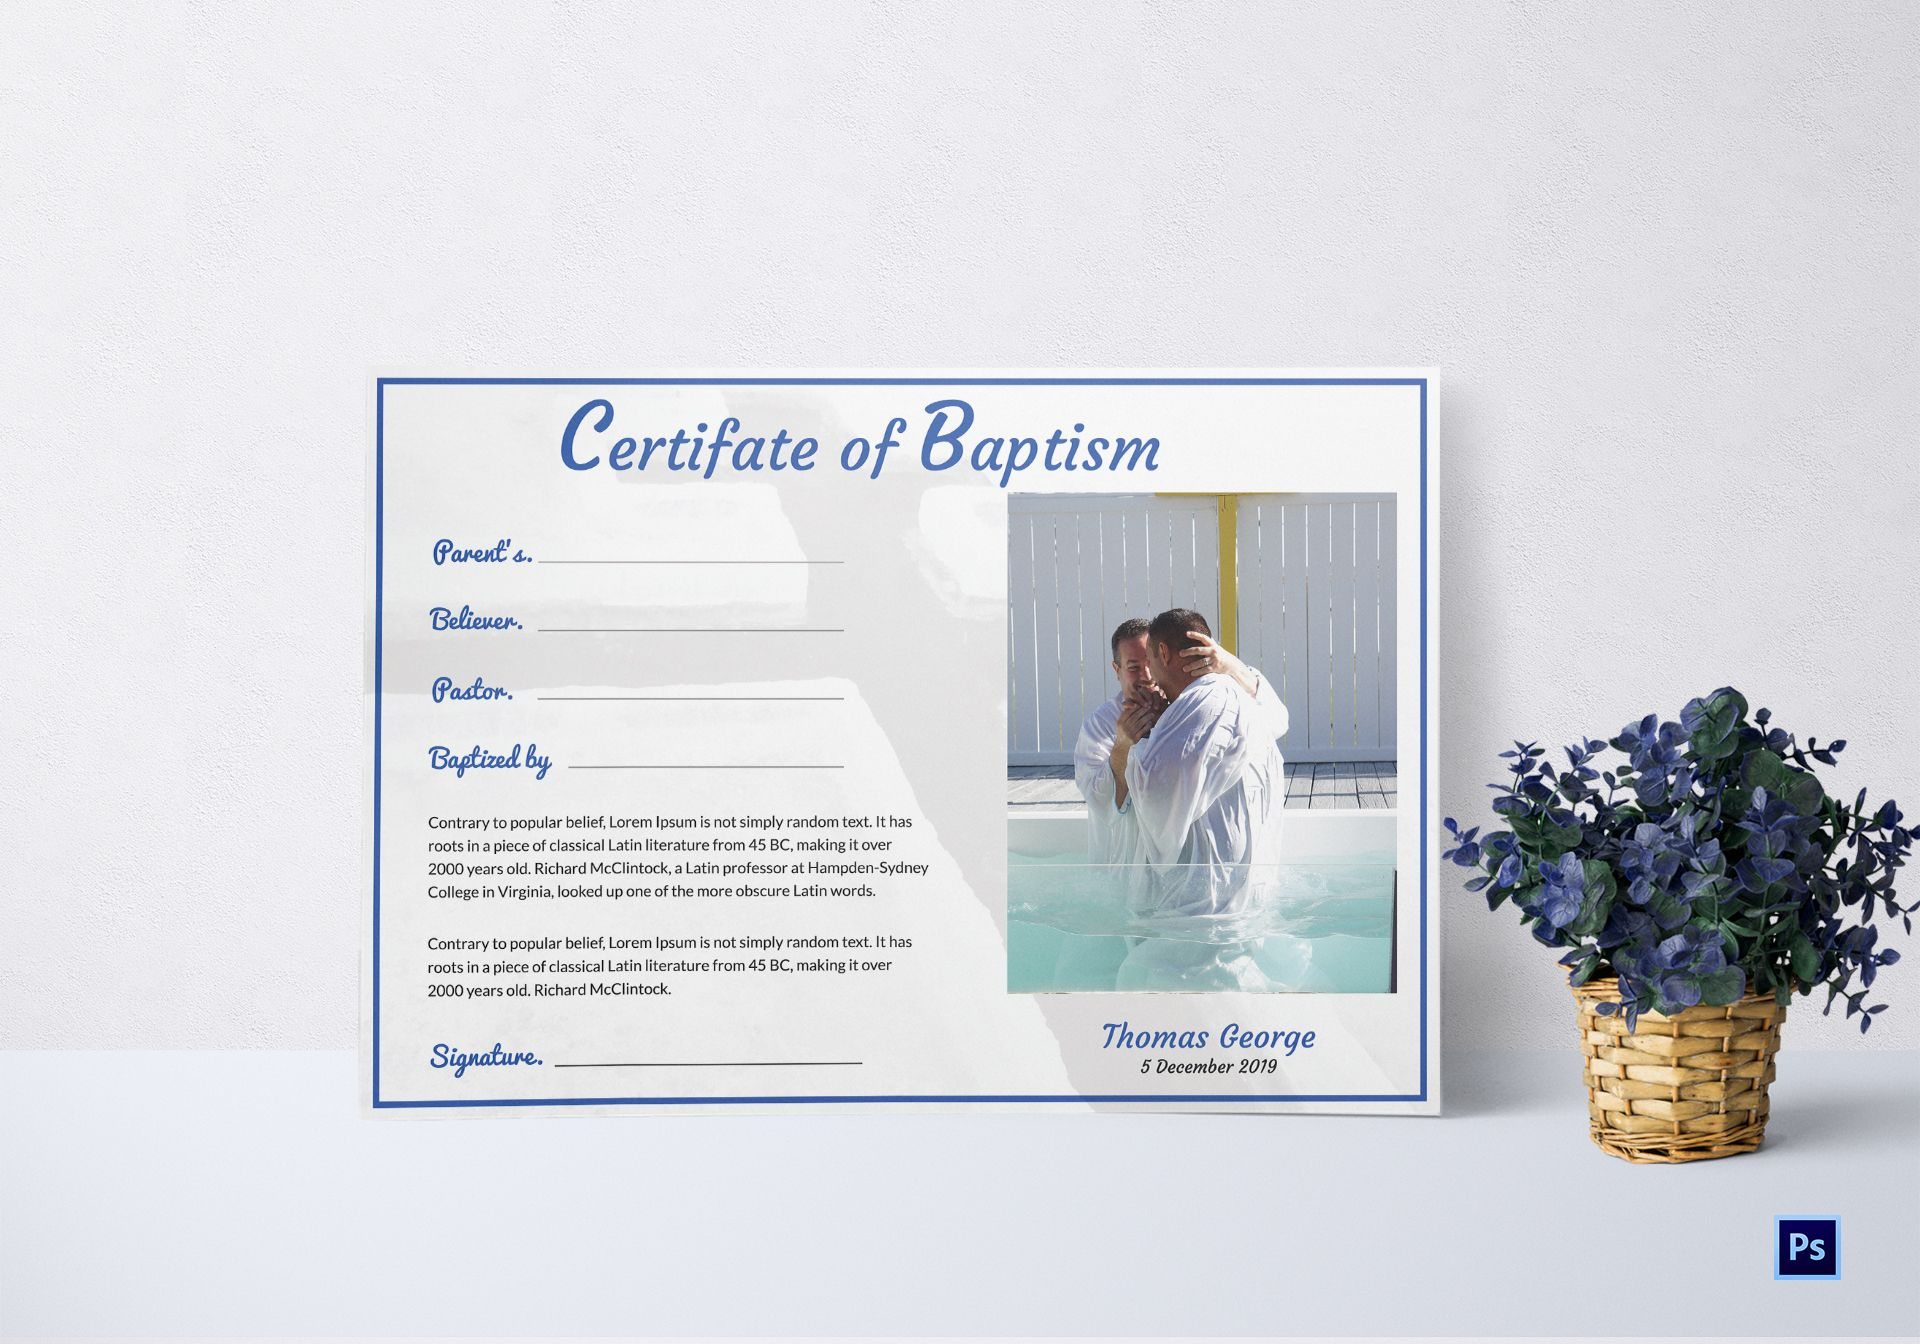 Accept. The adult baptism certificates criticism